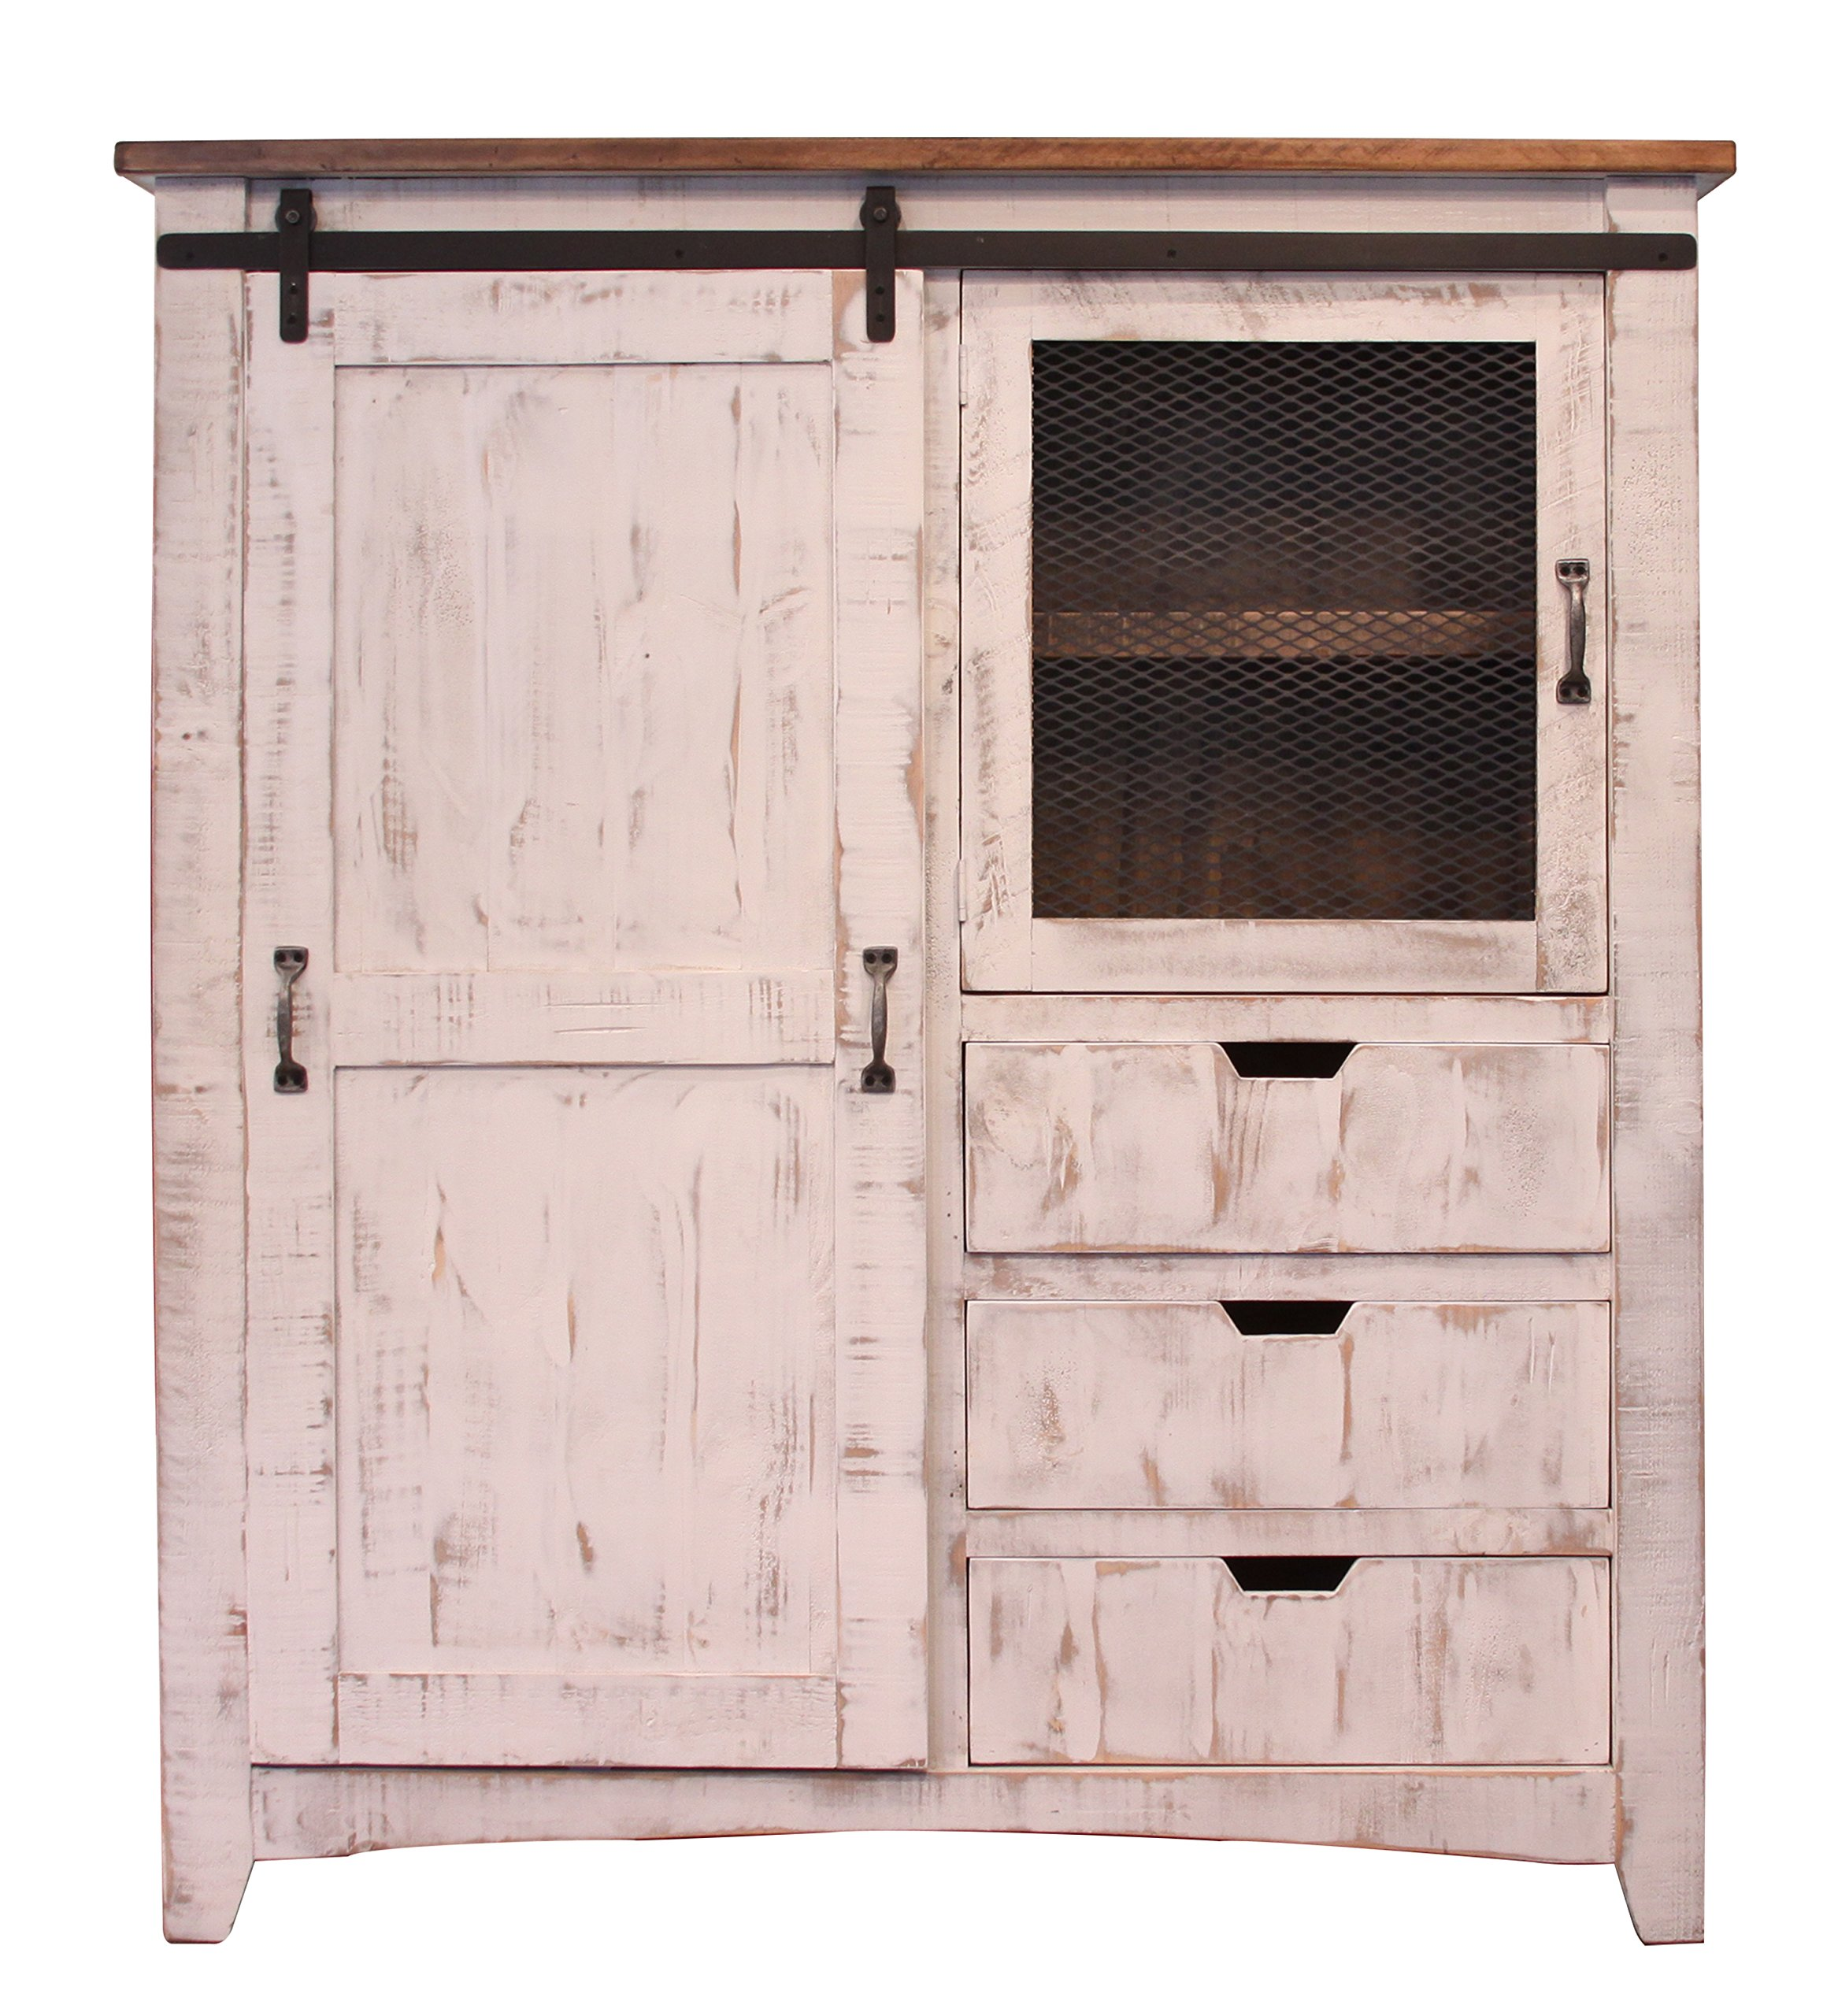 RR Distressed White Sturdy Solid Wood Anton Sliding Barn Door Gentlemans Chest Armoire. Arrives Fully Assembled And Features Upgraded Dovetail Drawers With Ball Bearing Glides